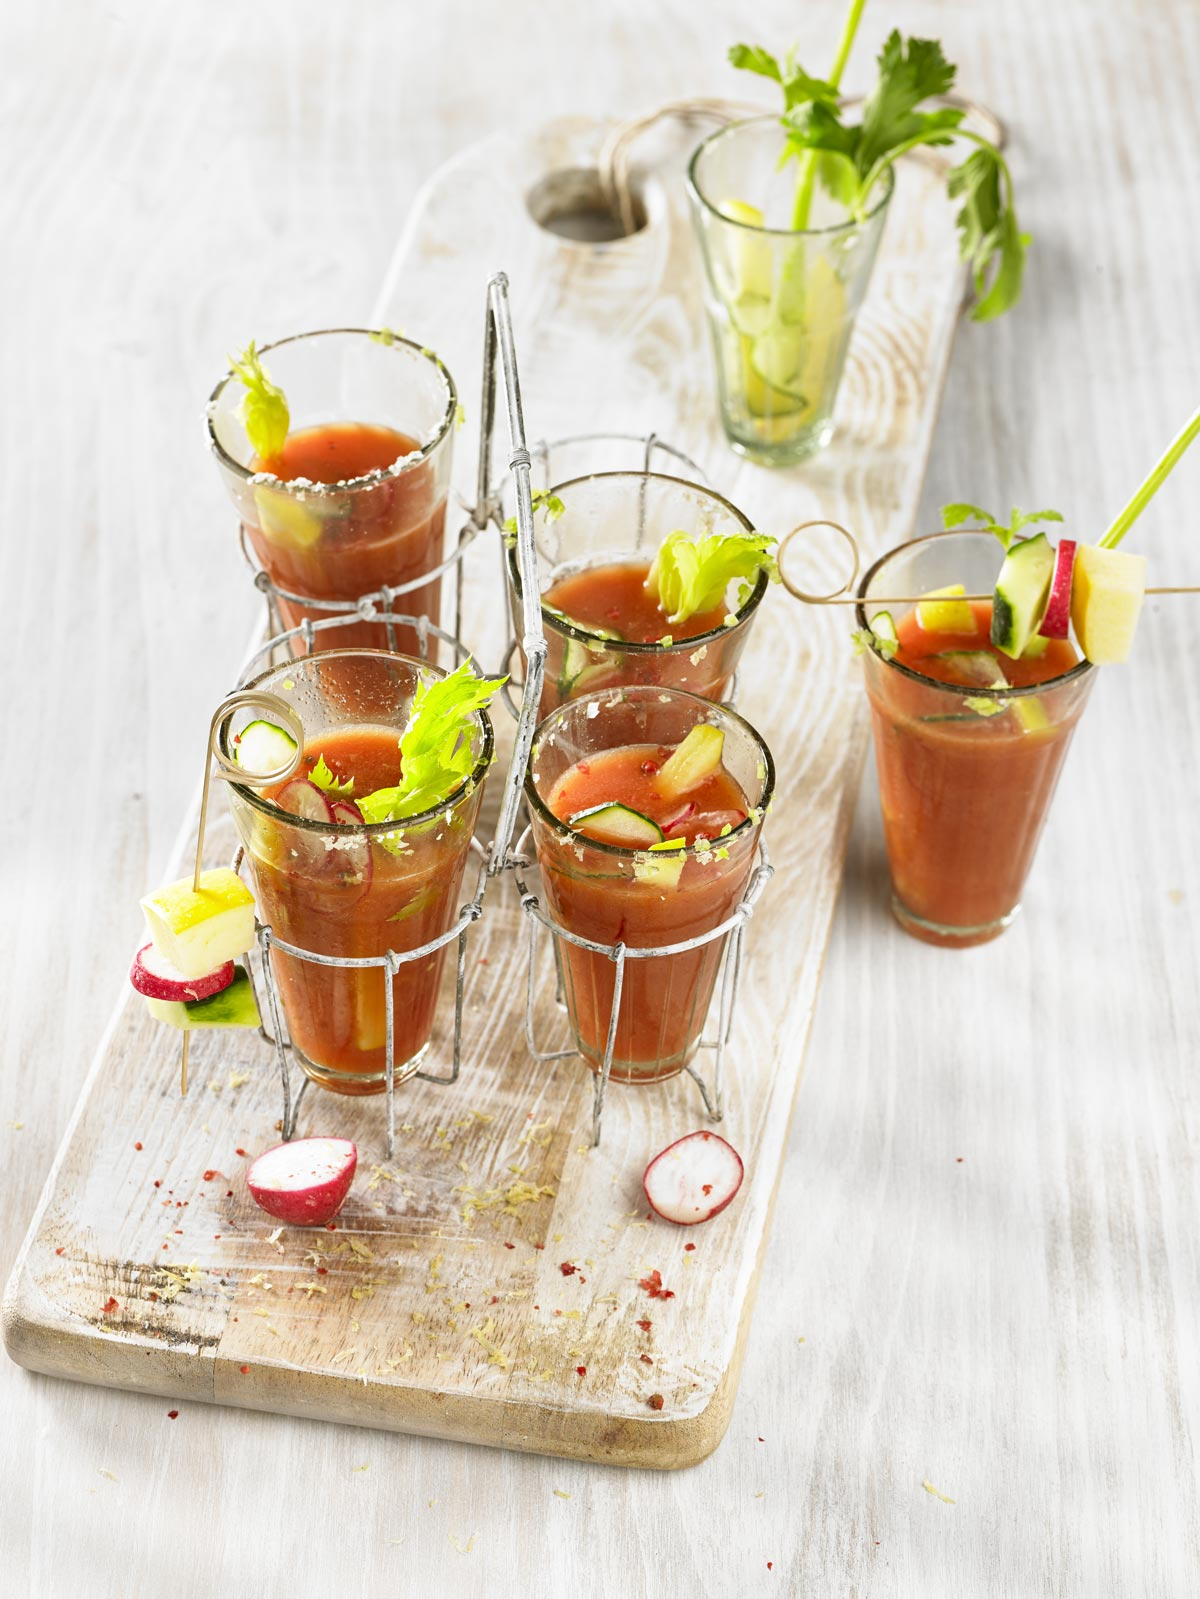 Bloody Mary saludable